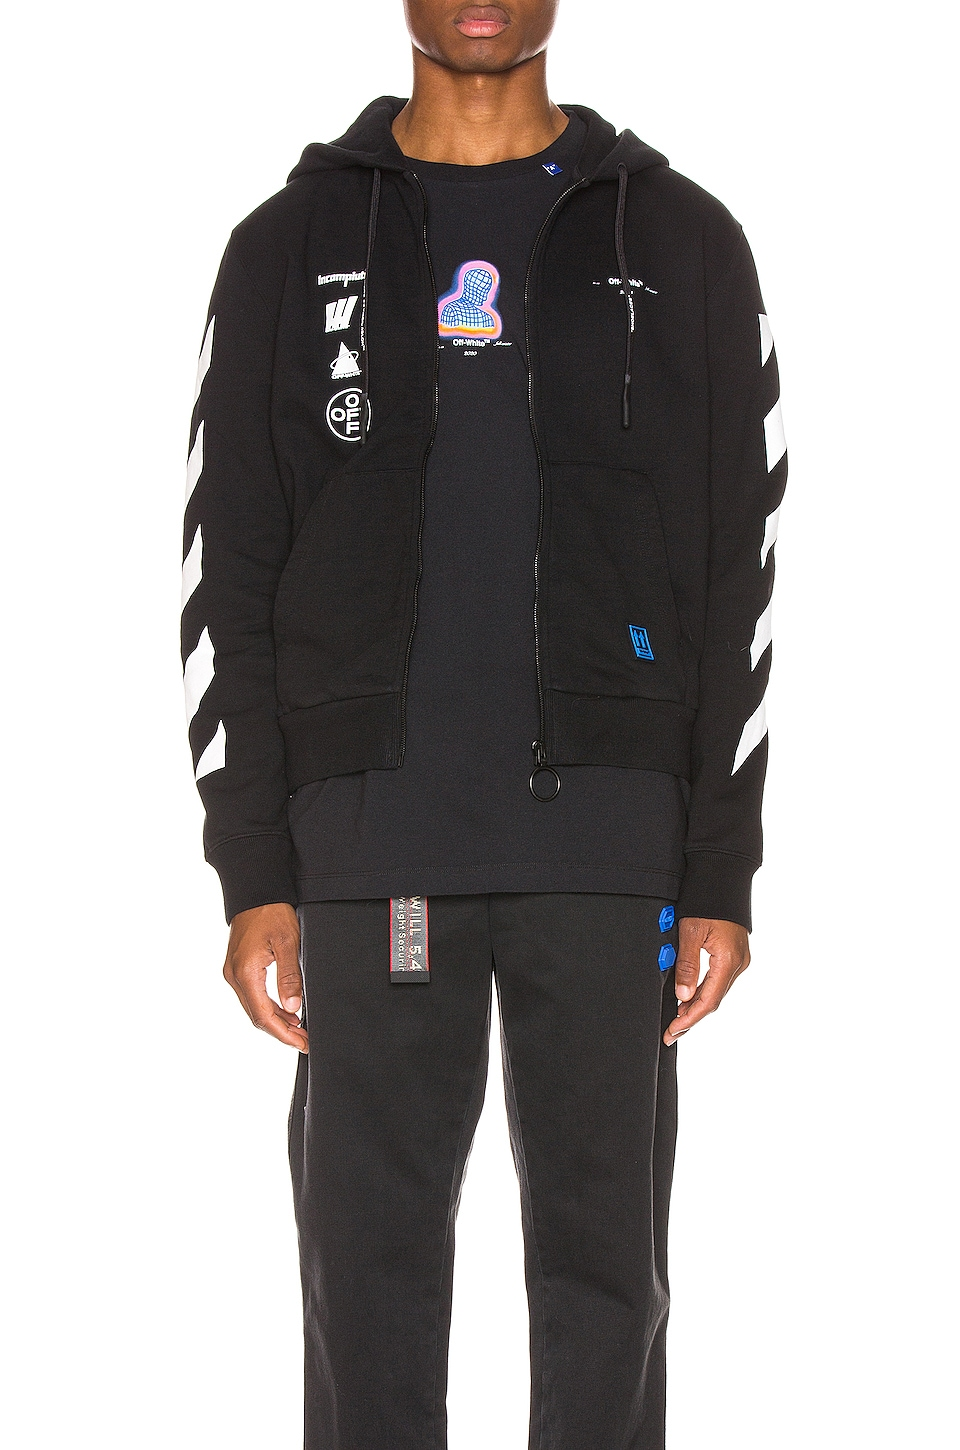 OFF-WHITE Mariana Zipped Hoodie in Black Multi